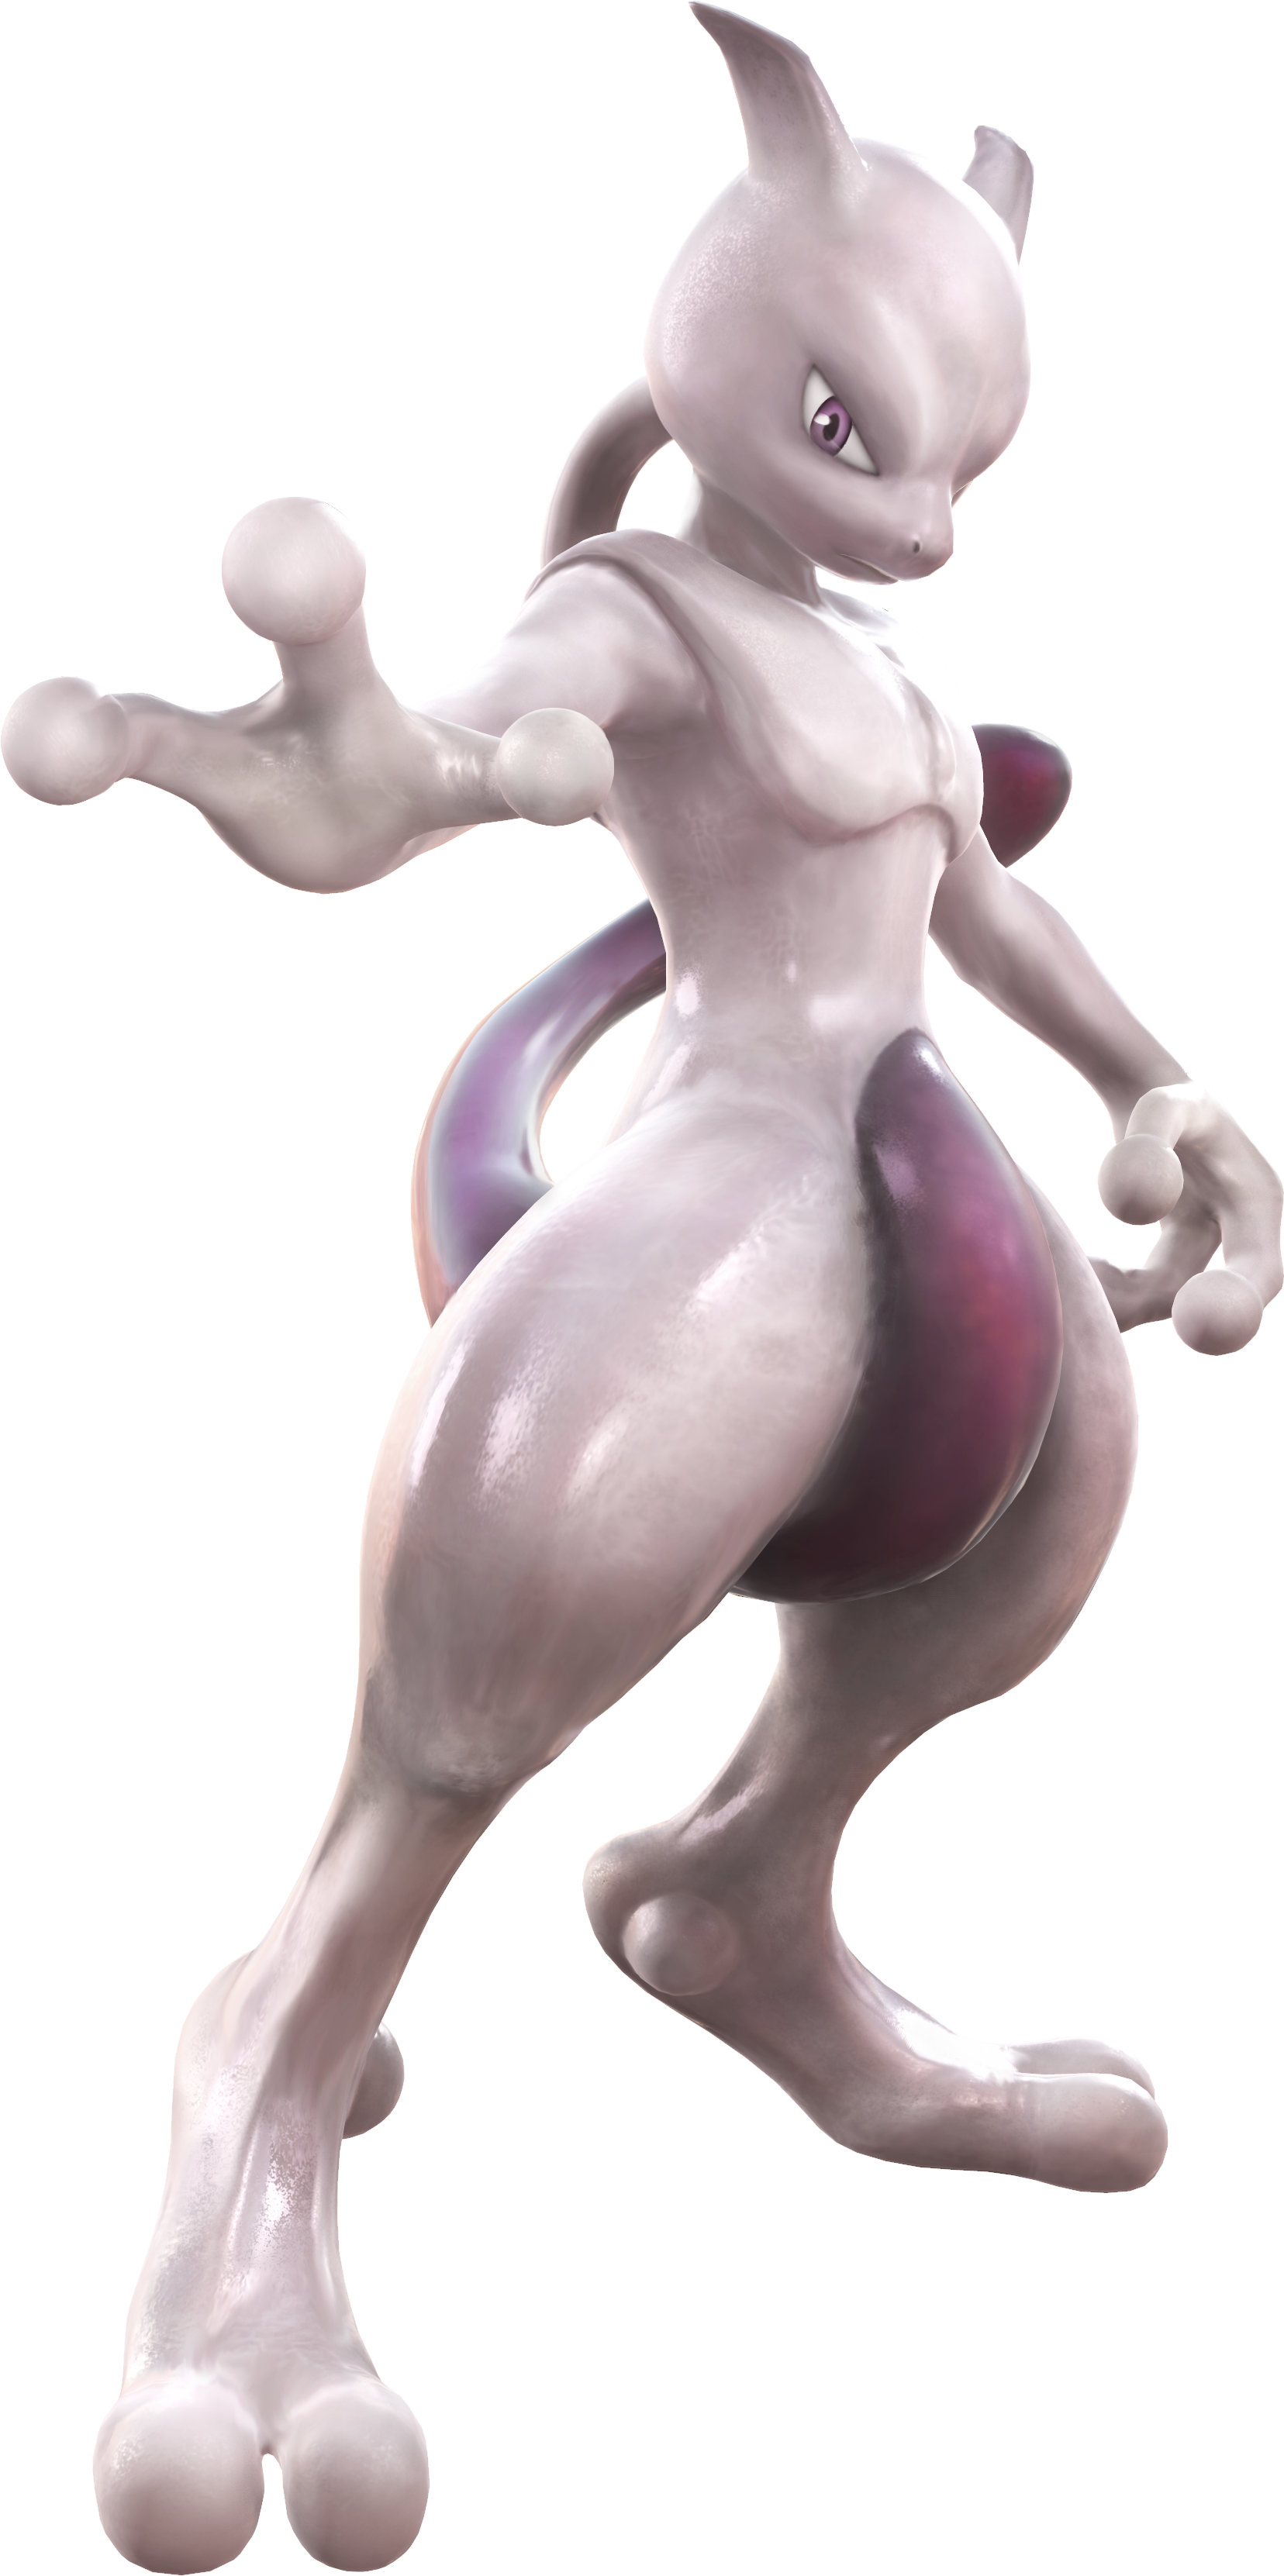 Image - Pokken Mewtwo.png | Fantendo - Nintendo Fanon Wiki | FANDOM powered  by Wikia - Mewtwo PNG